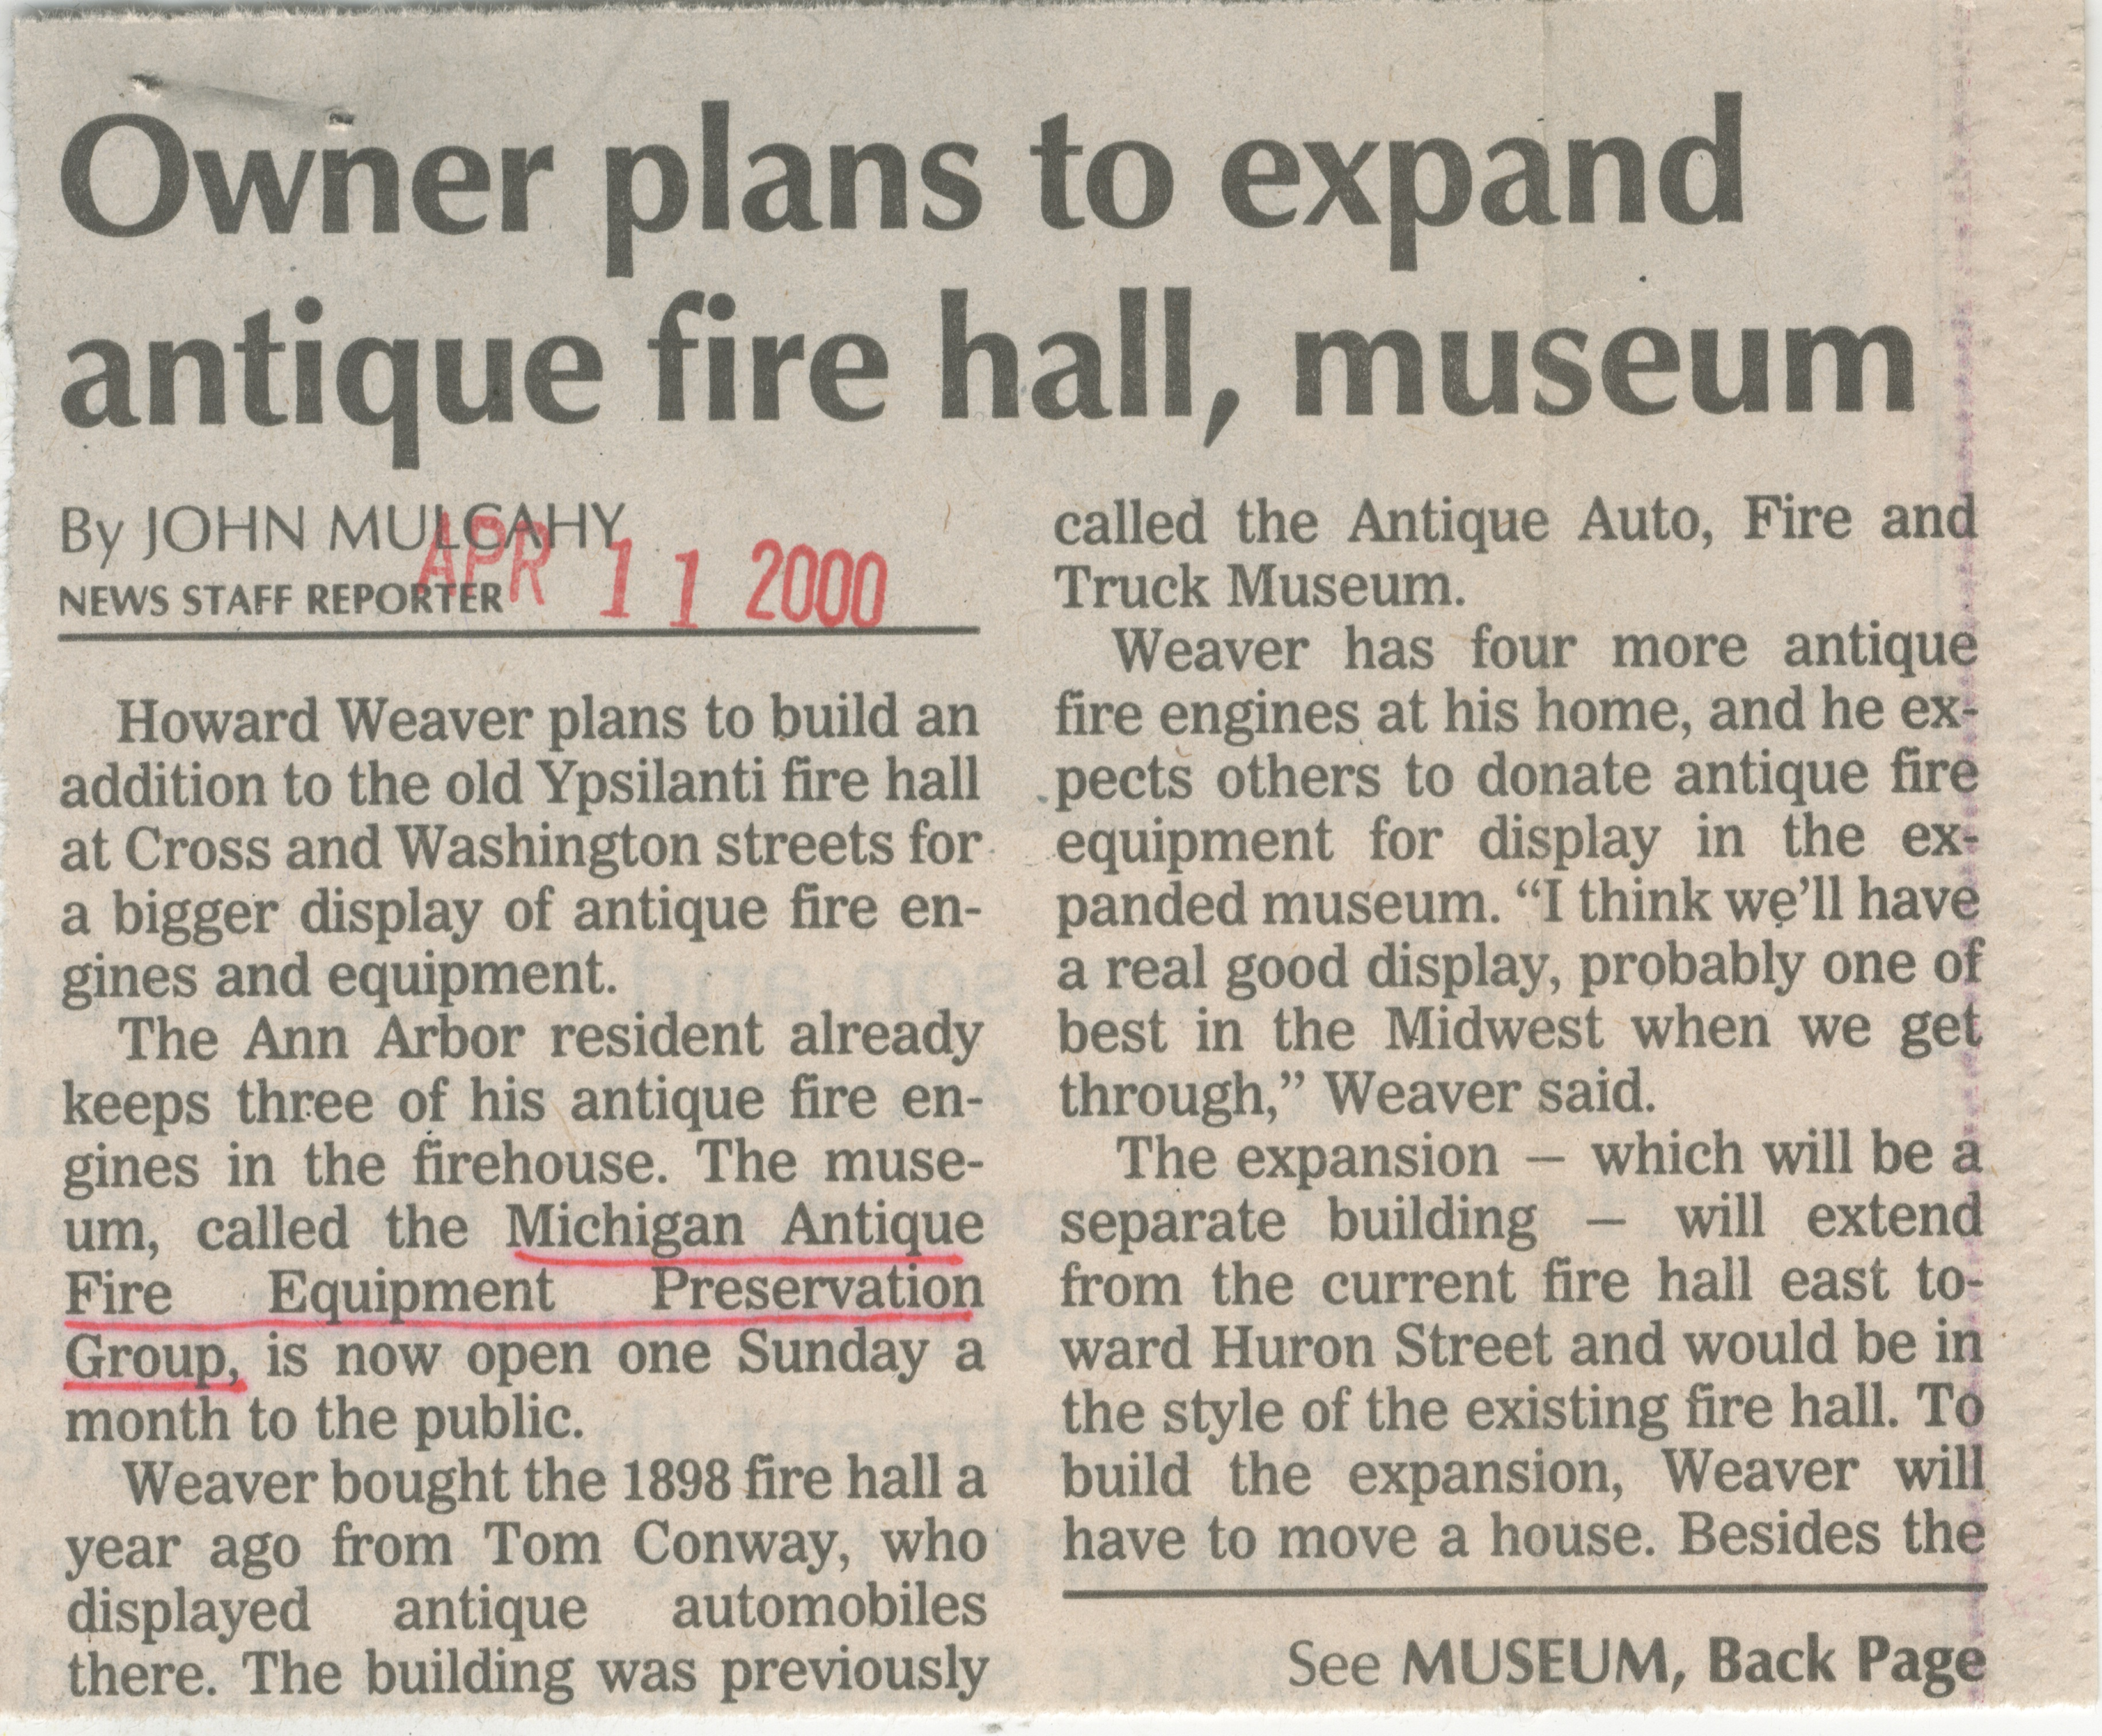 Owner Plans To Expand Antique Fire Hall, Museum image